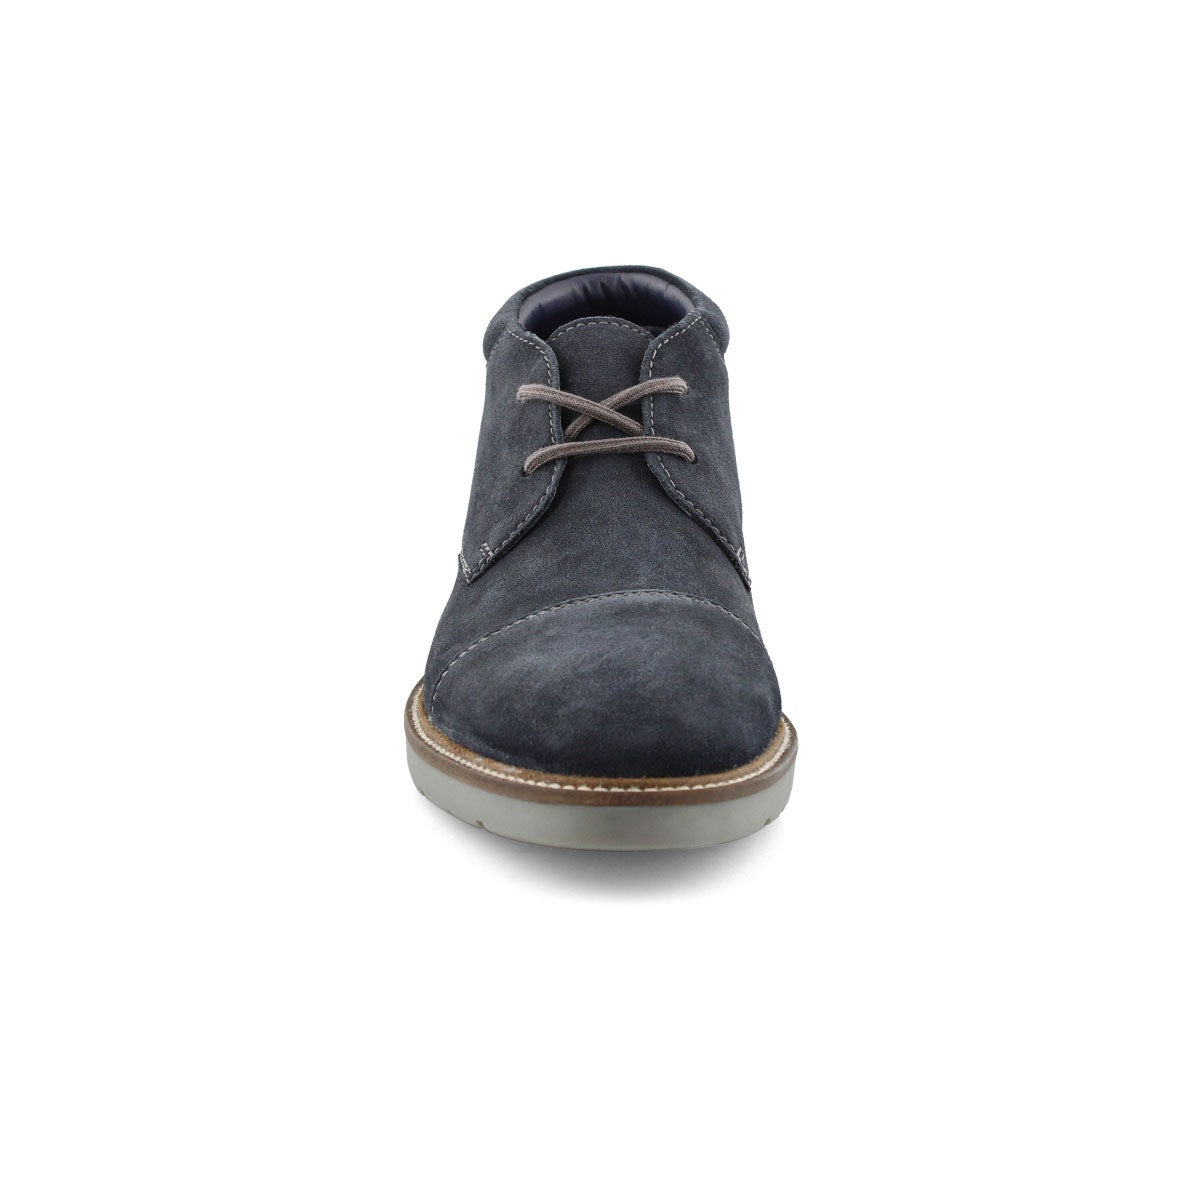 Mns Grandin Top navy lace up chukka boot